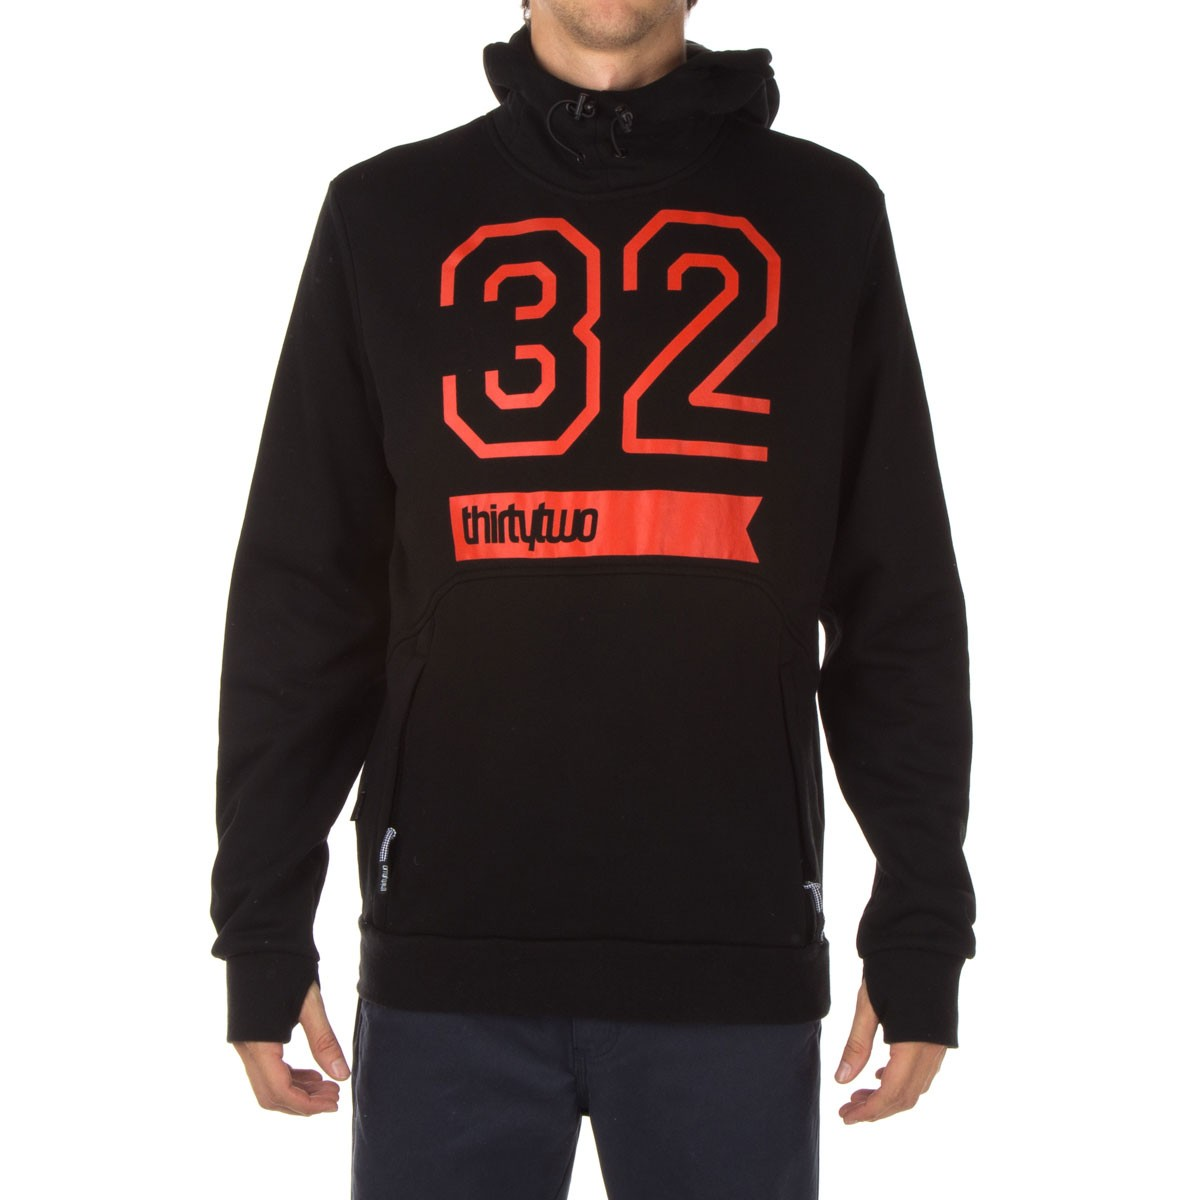 Thirty two hoodies